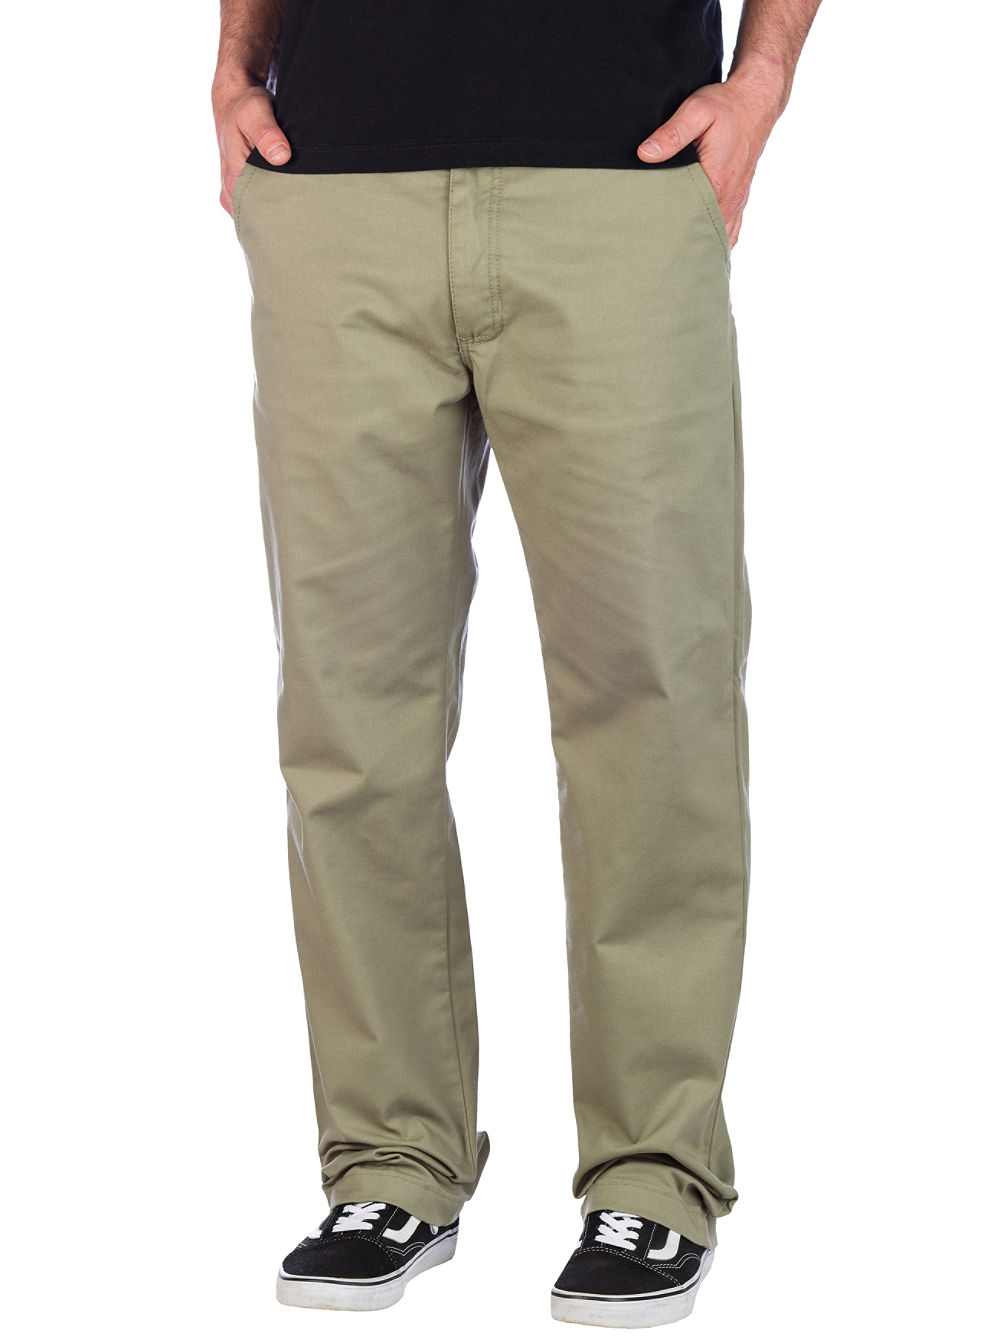 Authentic Chino Pro Hose